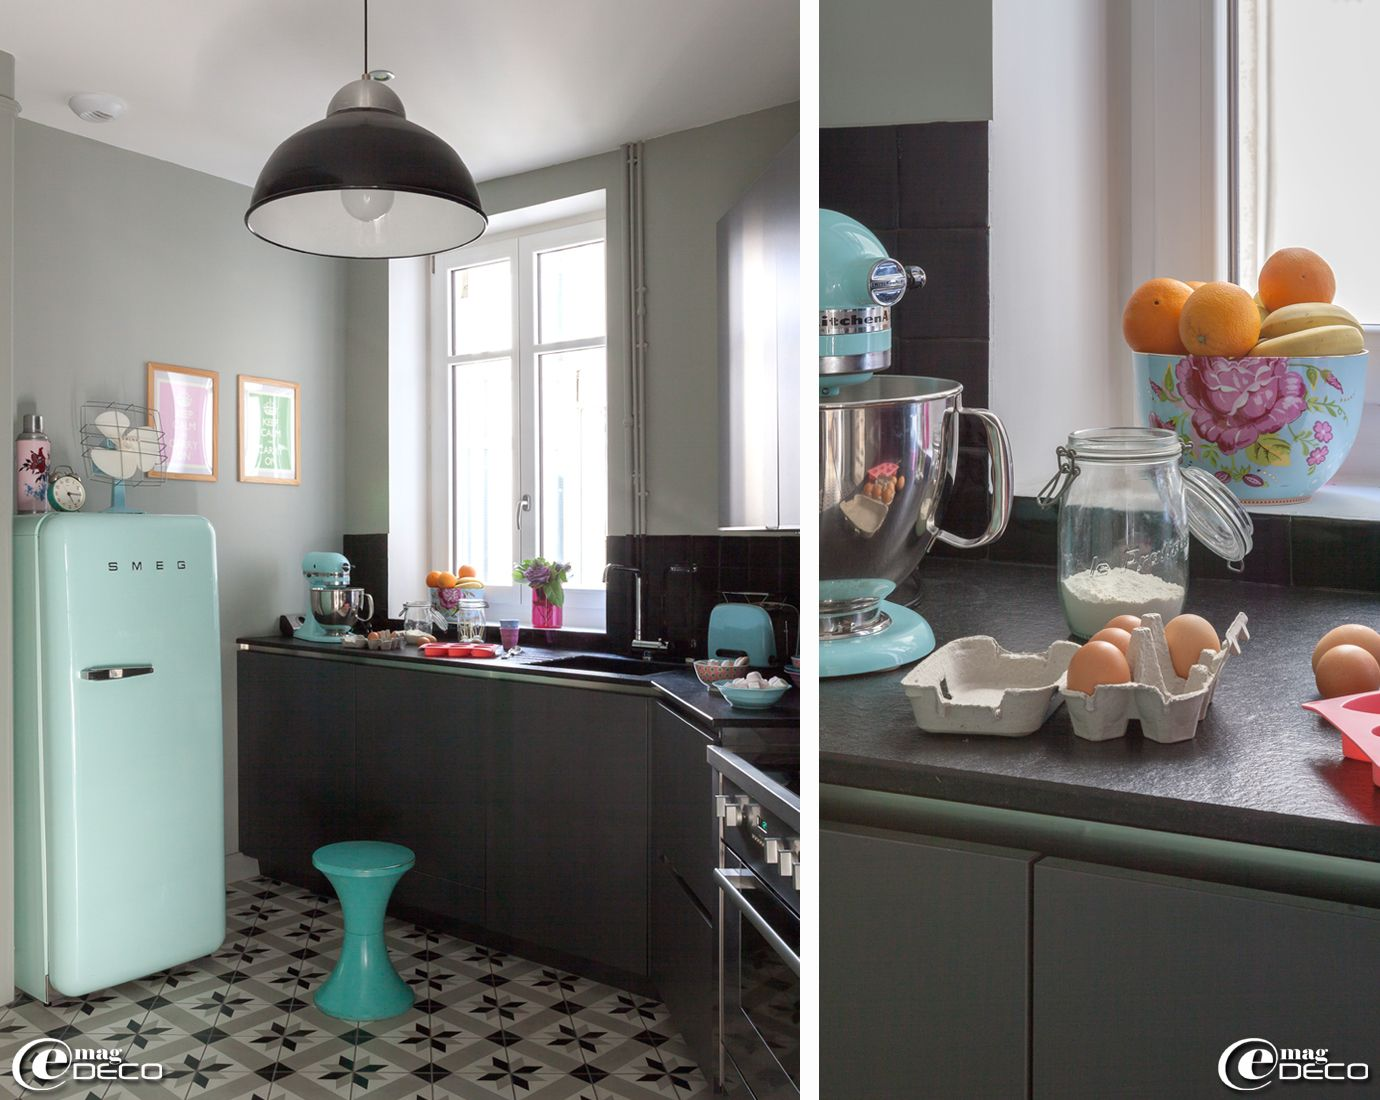 1000 images about cuisine et frigo smeg on pinterest pastel industrial and small kitchens - Frigo Bleu